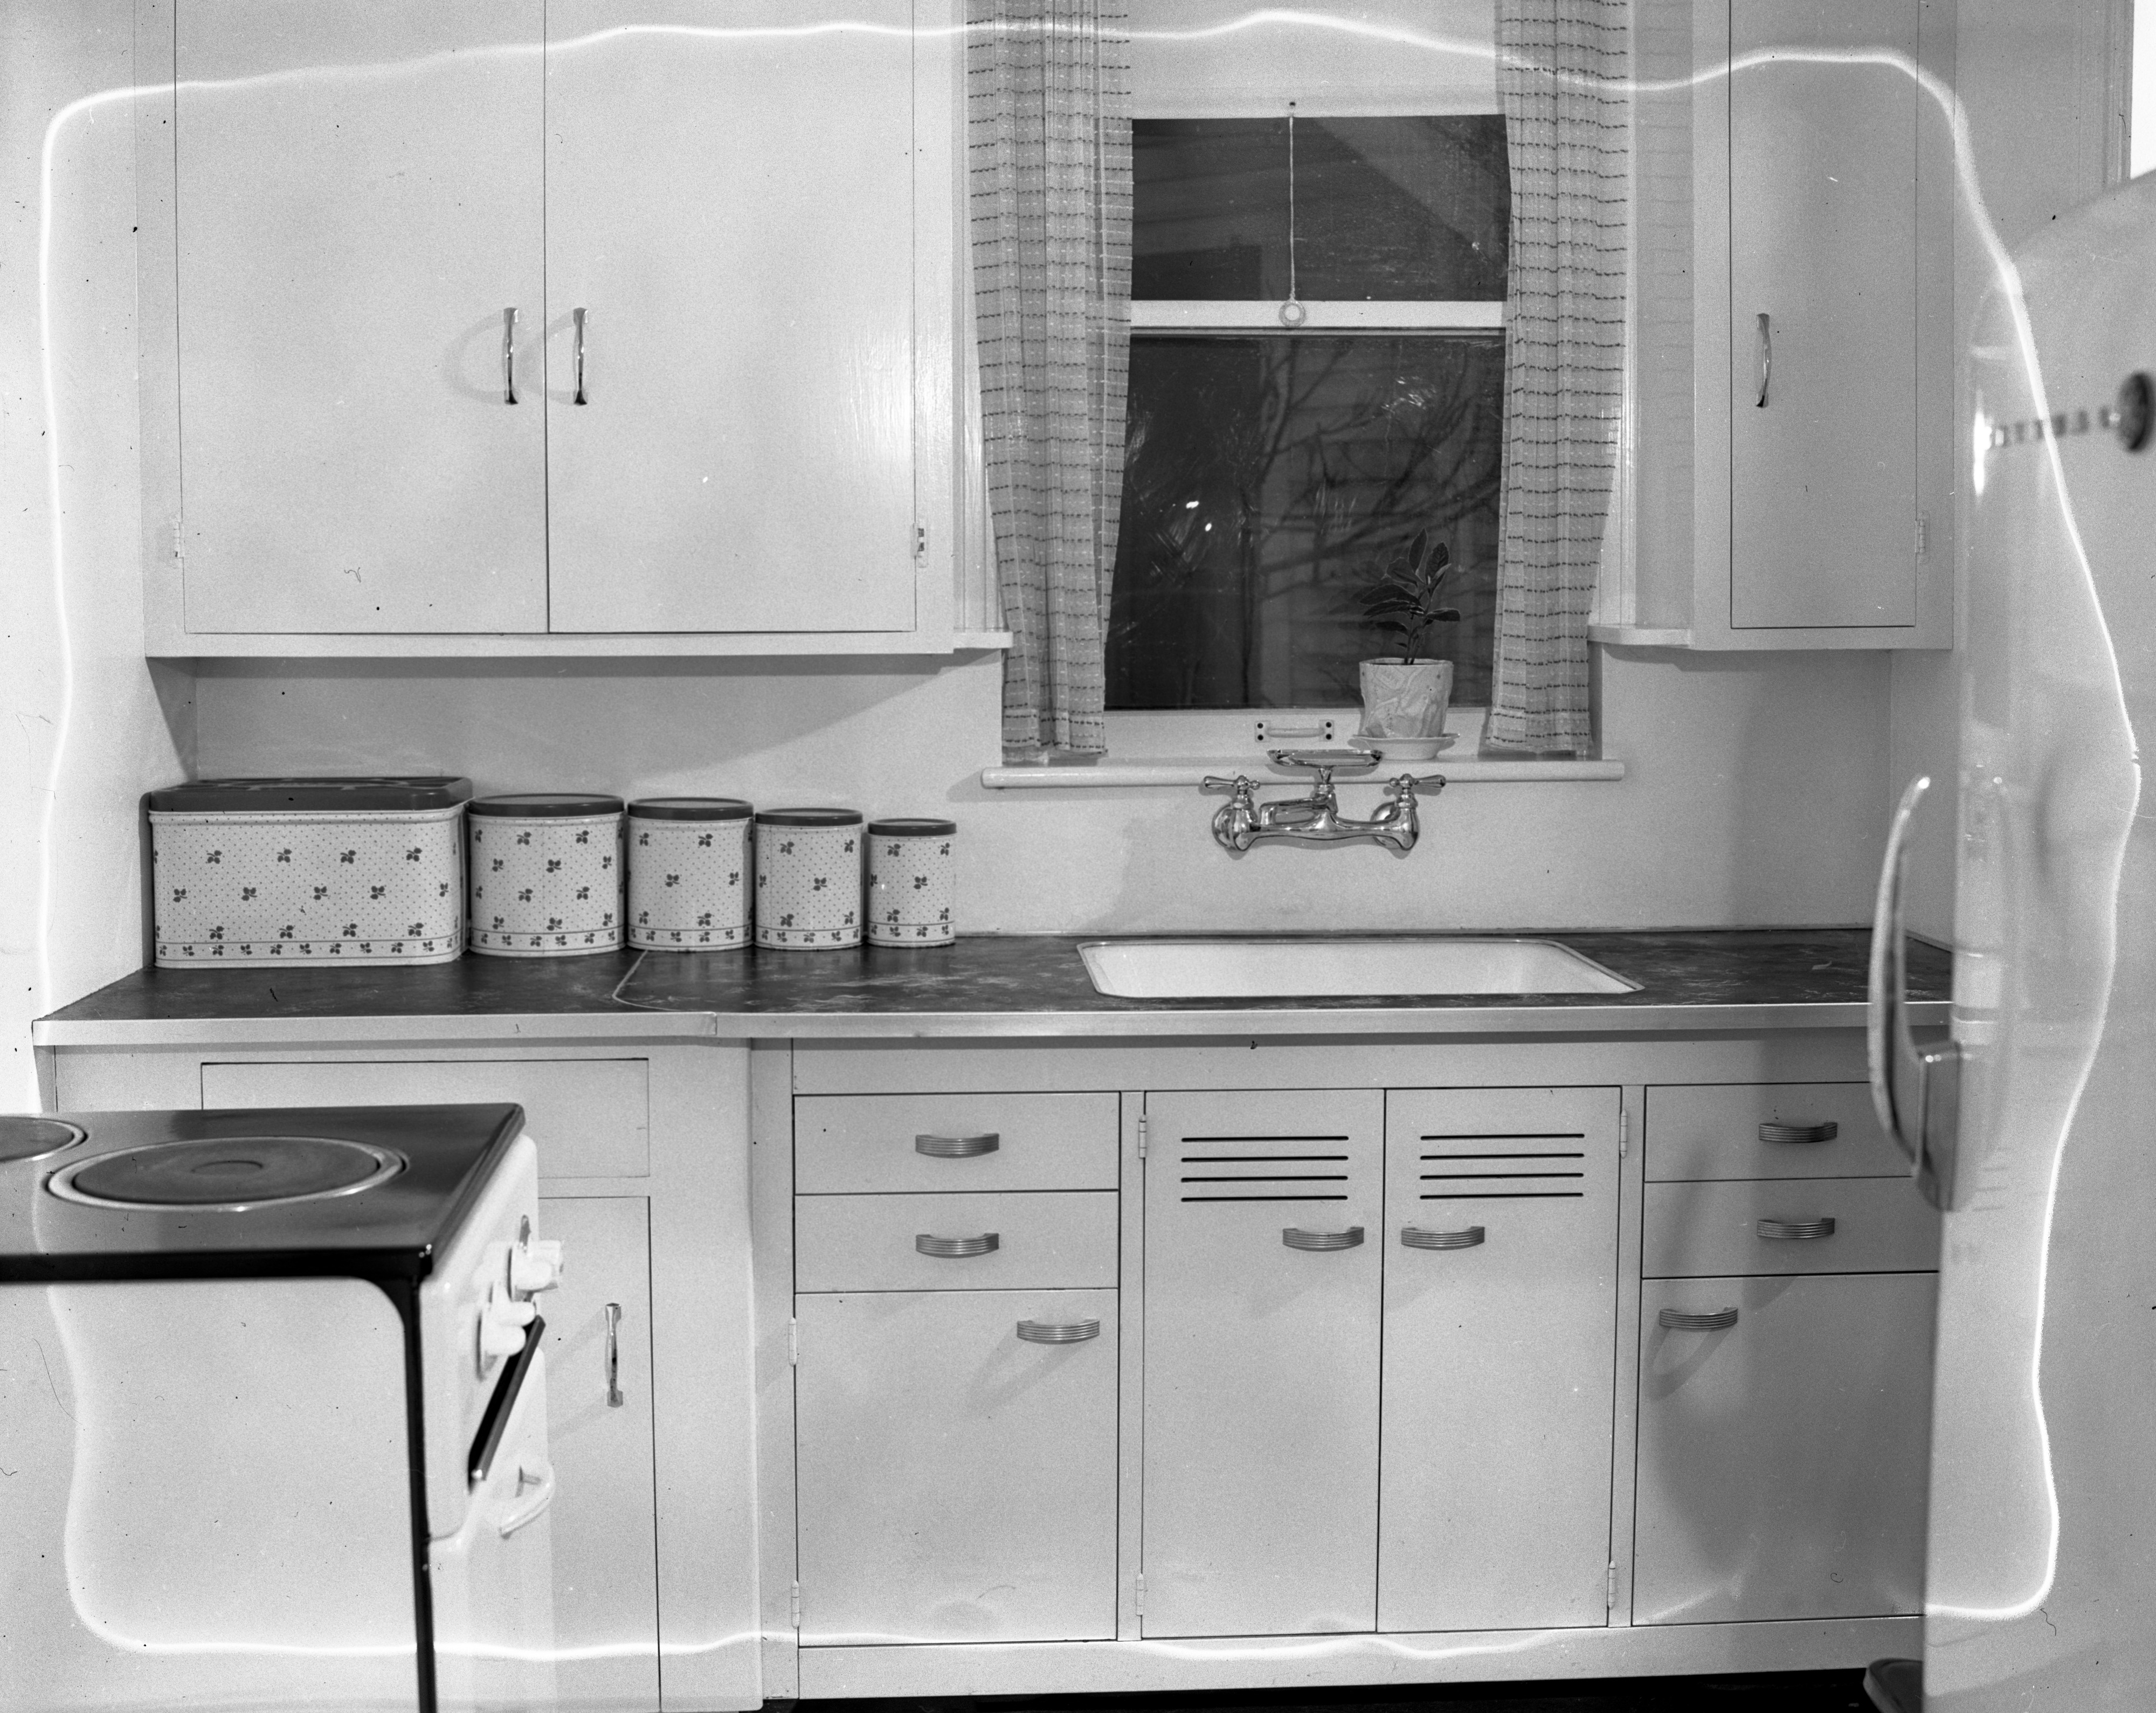 Kitchen in the 5th Ward Voting Building, home for a WWII veteran, November 1946 image